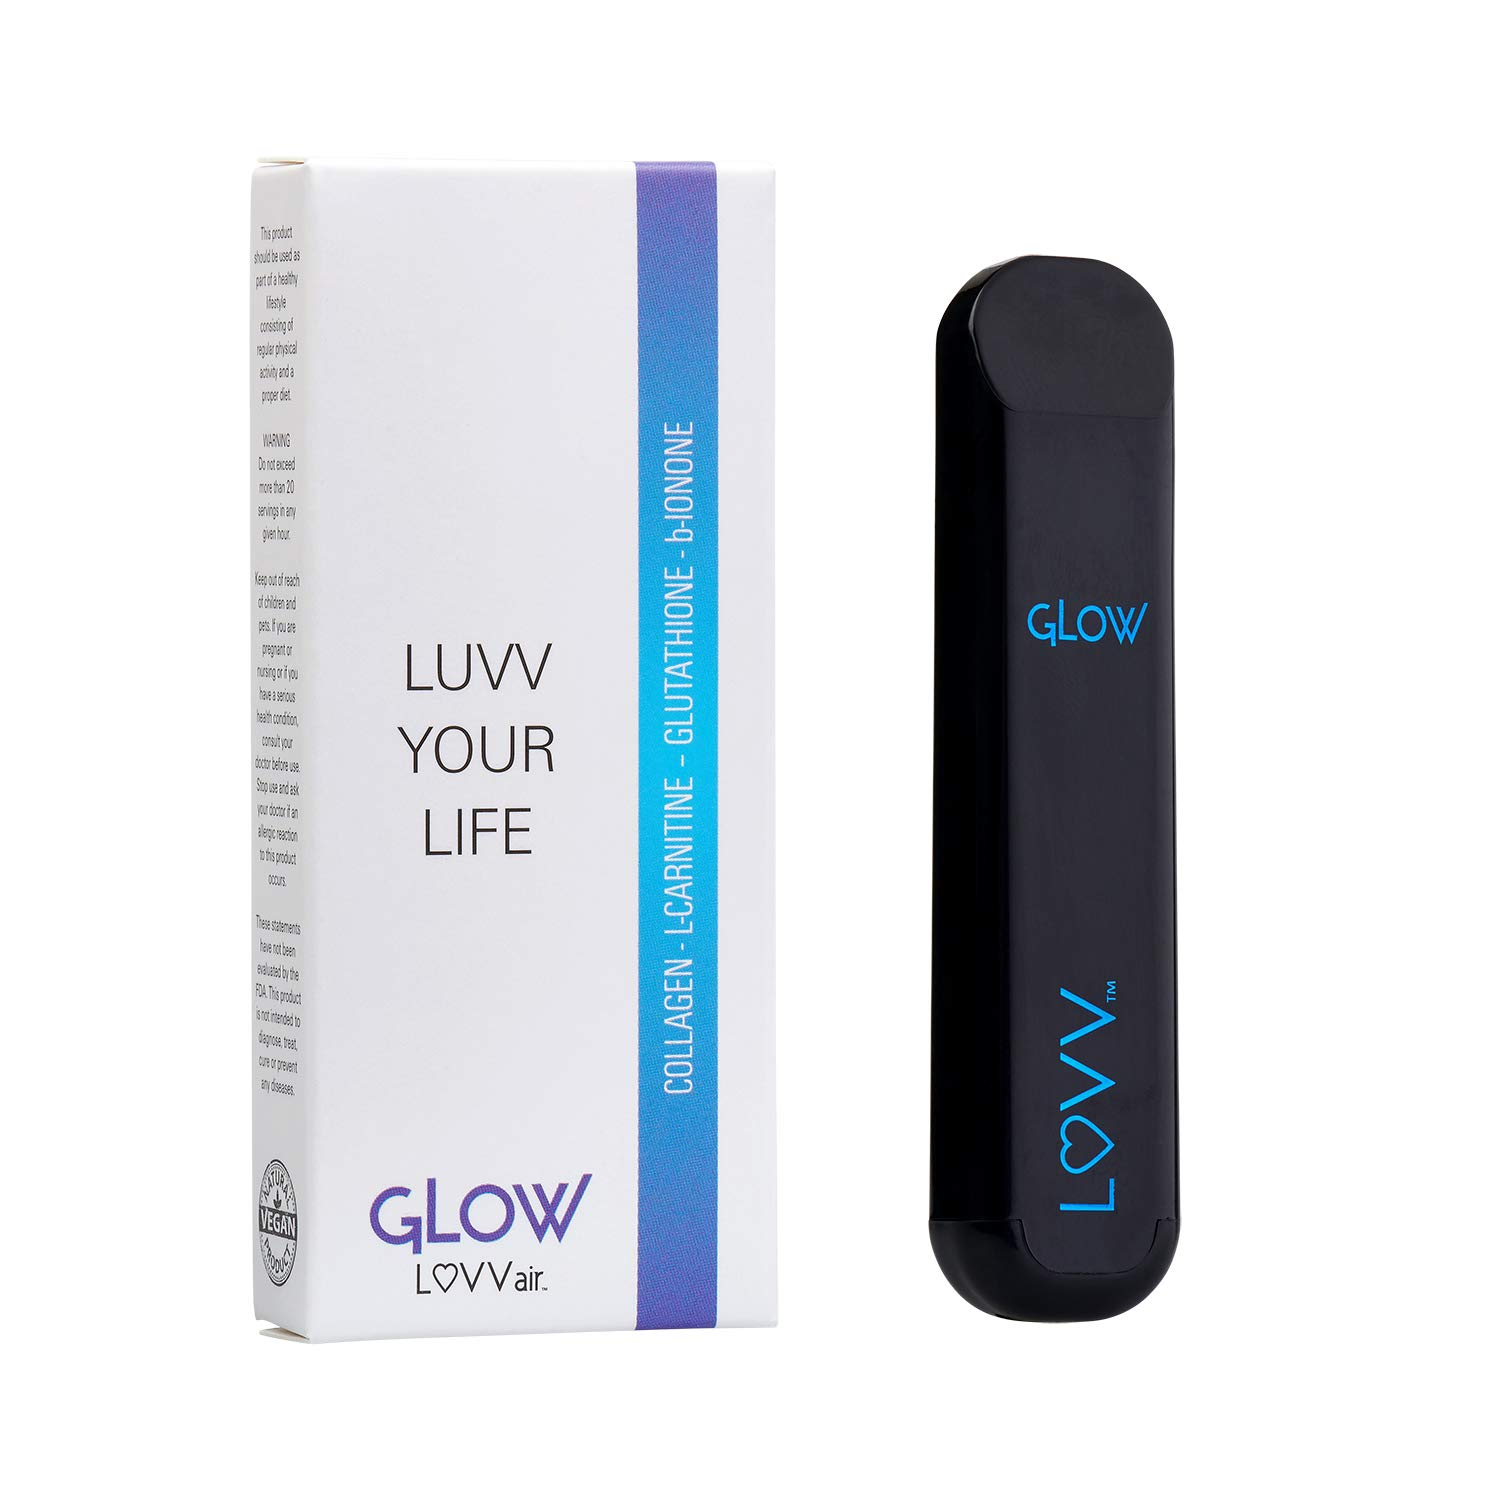 GLOW Aromatherapy Personal Pen Diffuser - Natural Lavender Essential Oil Infused with Collagen, L-Carnitine, Glutathione, B-Ionone for a Healthy Glow